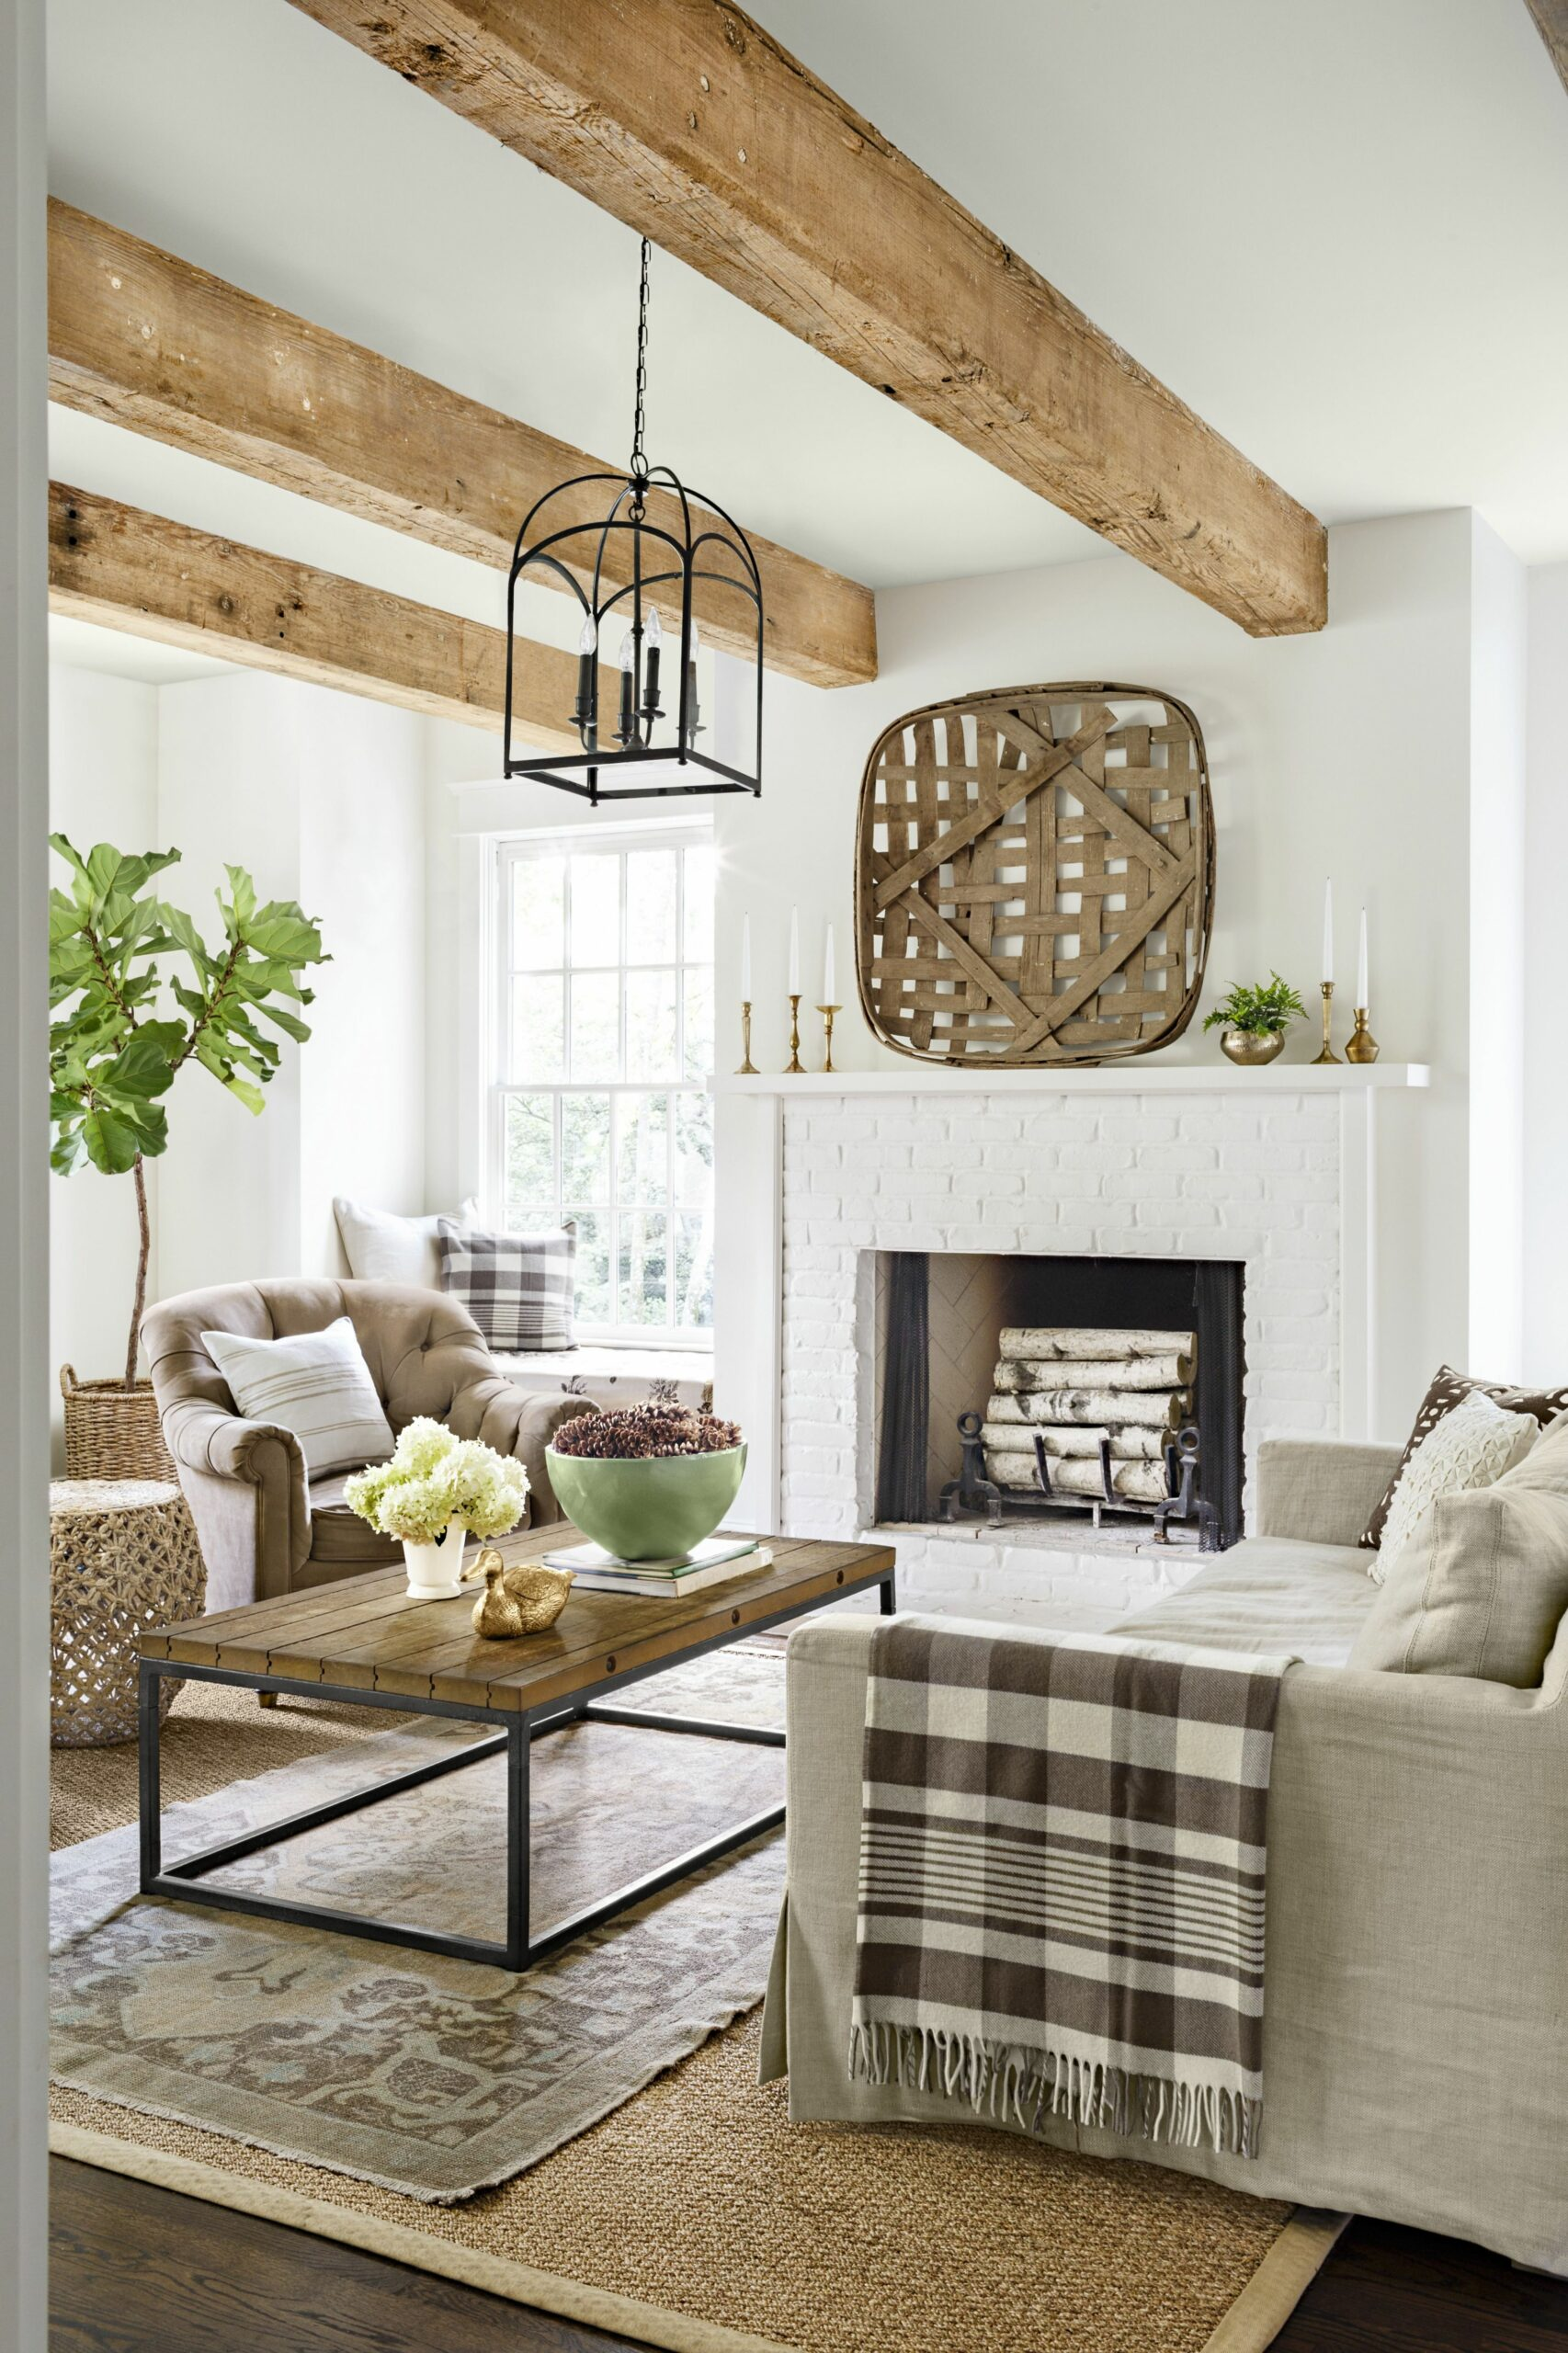 8 Rustic Living Room Ideas - Modern Rustic Living Room Decor and ..